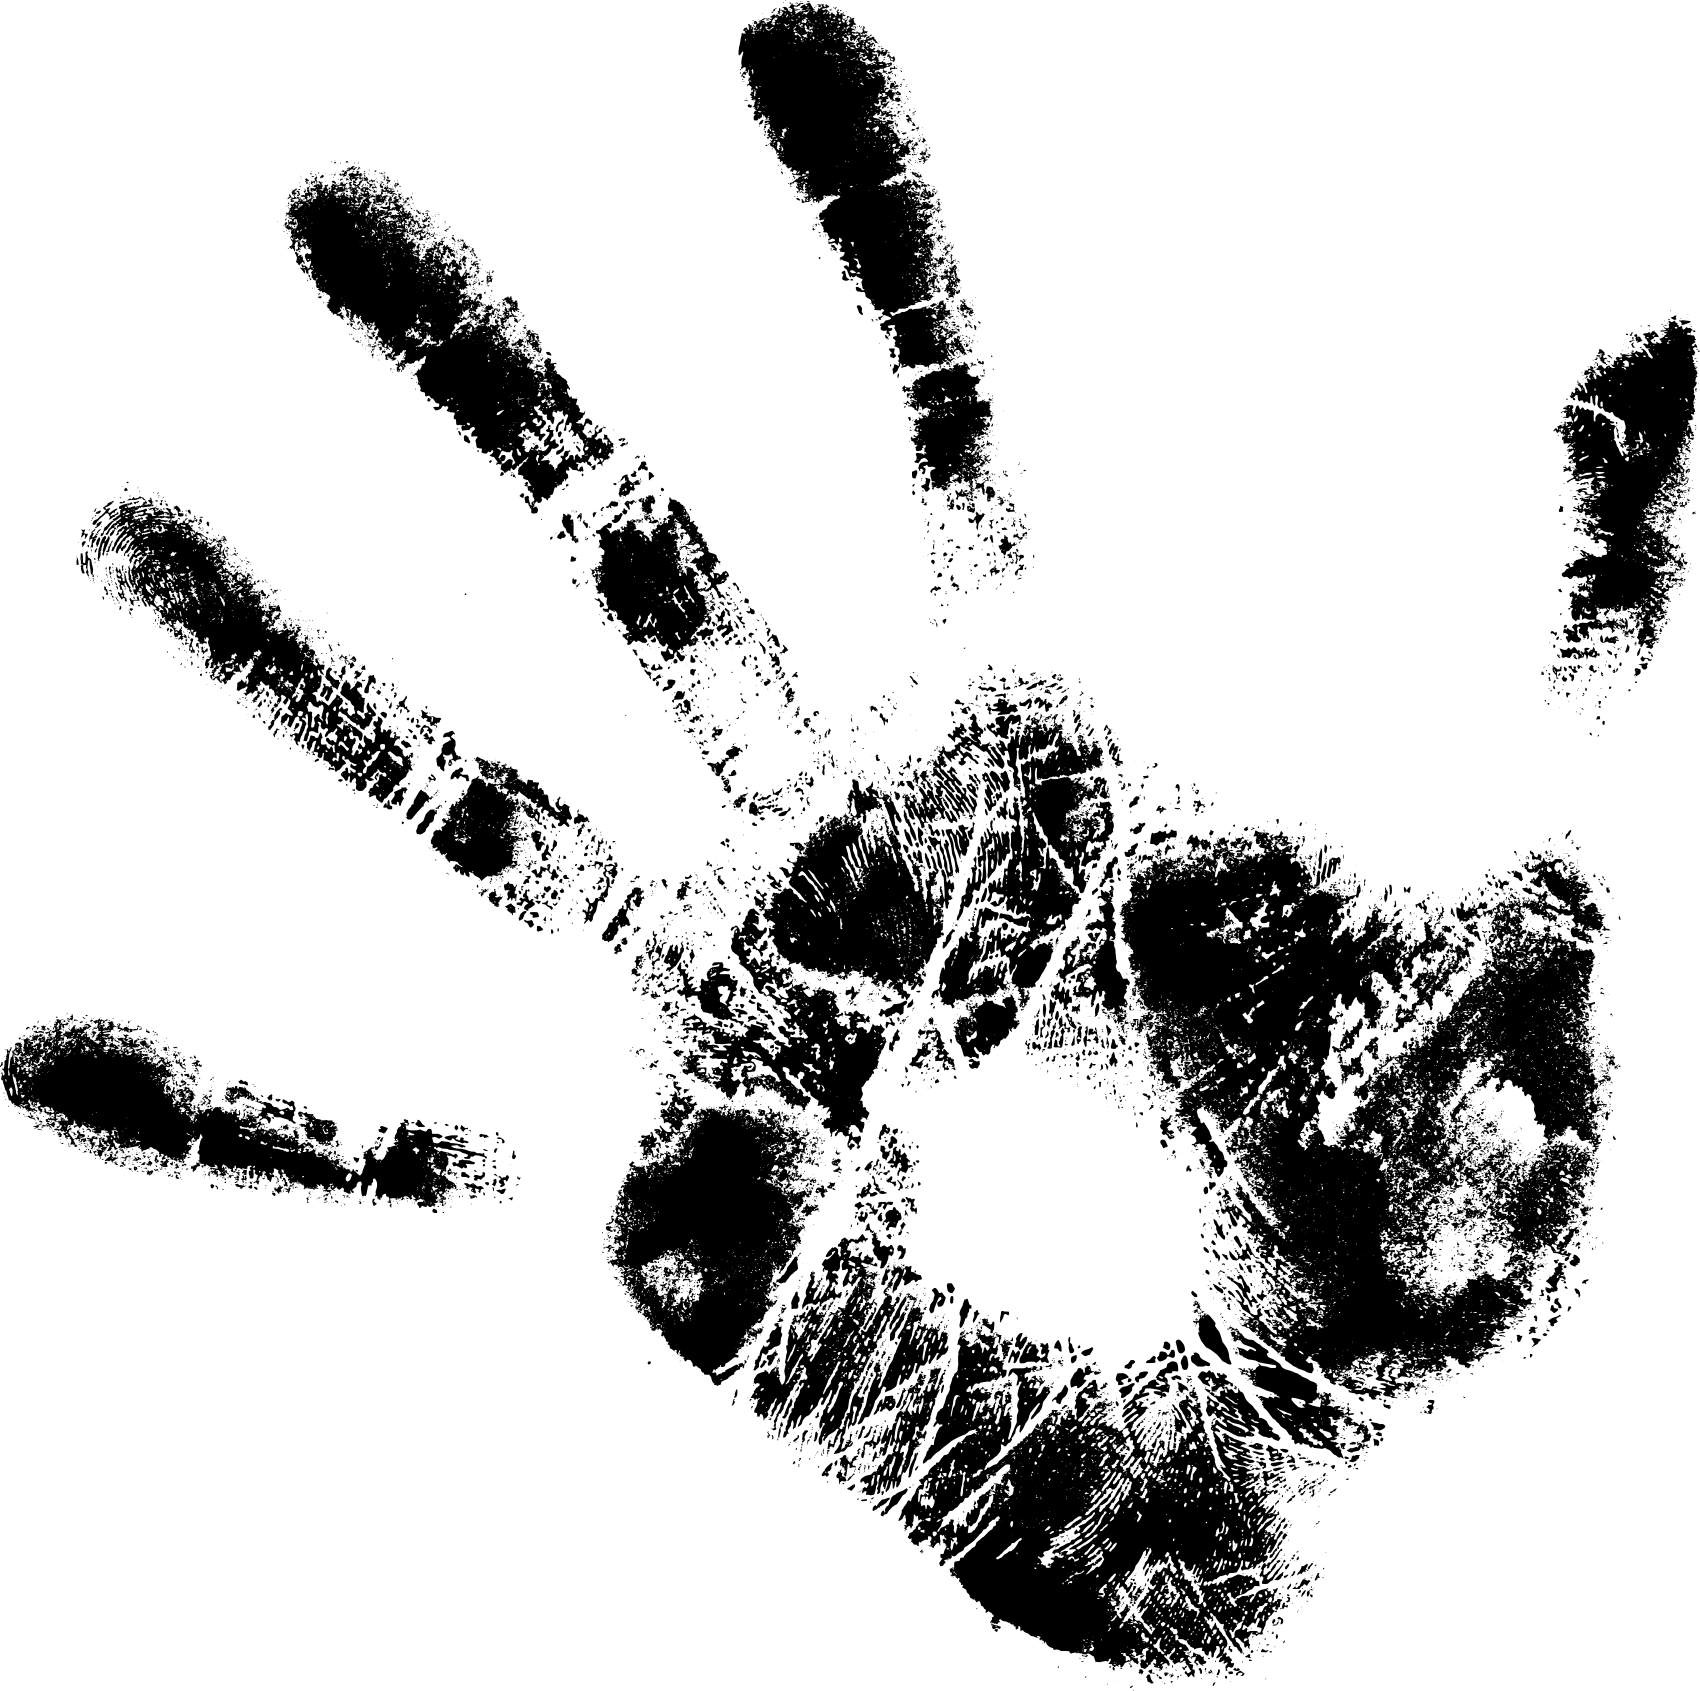 Handprint drawing. Black handprints png